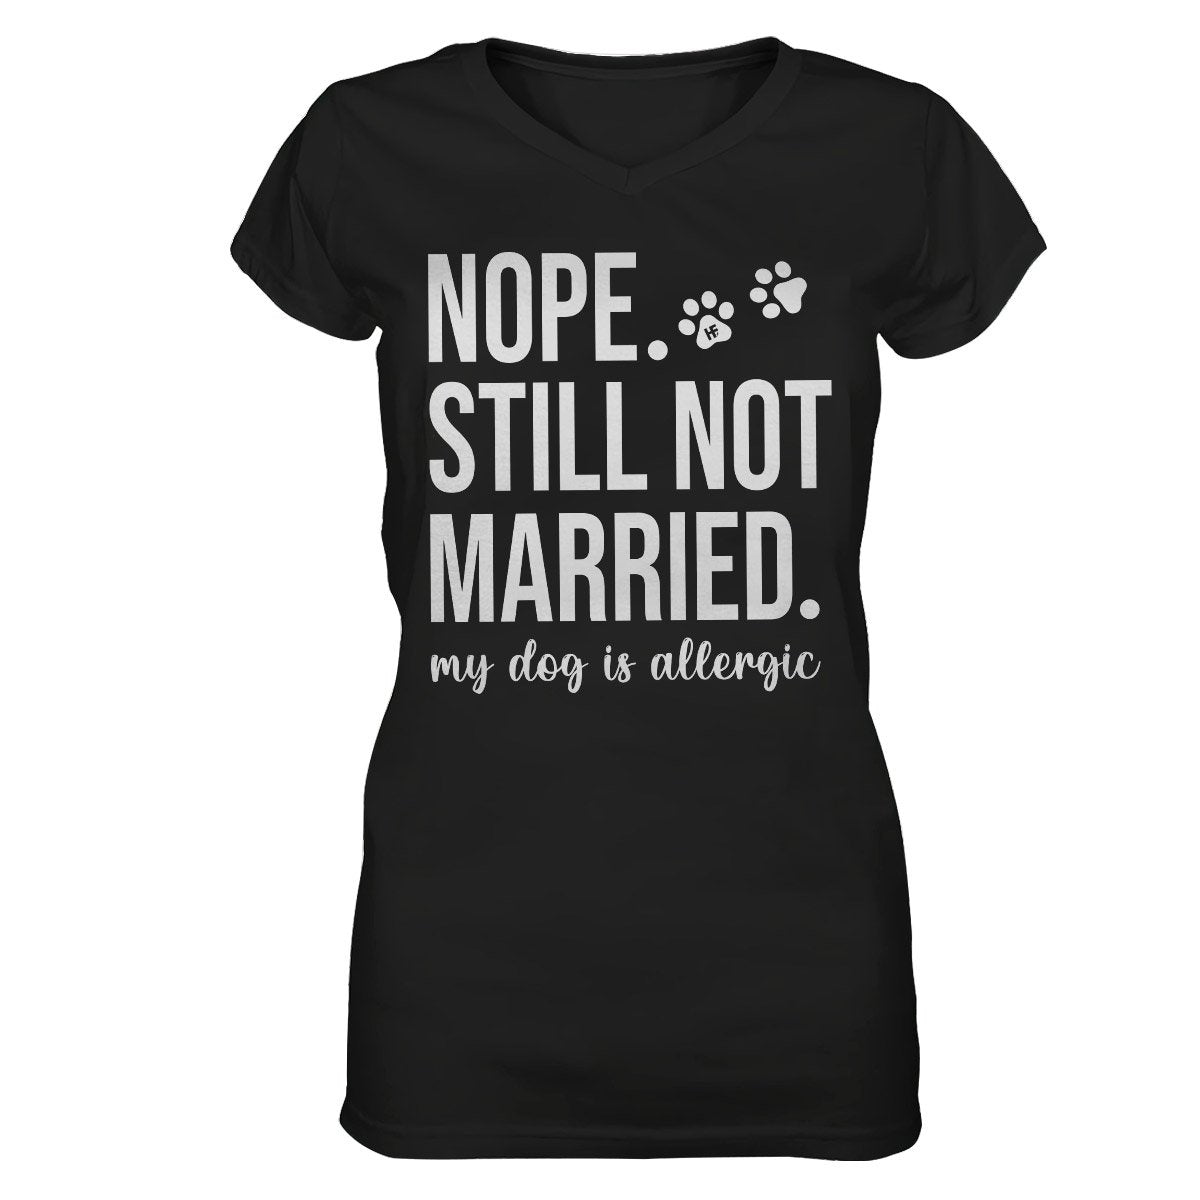 Nope Still Not Married My Dog Is Allergic EZ16 0503 Women V-neck T-shirt